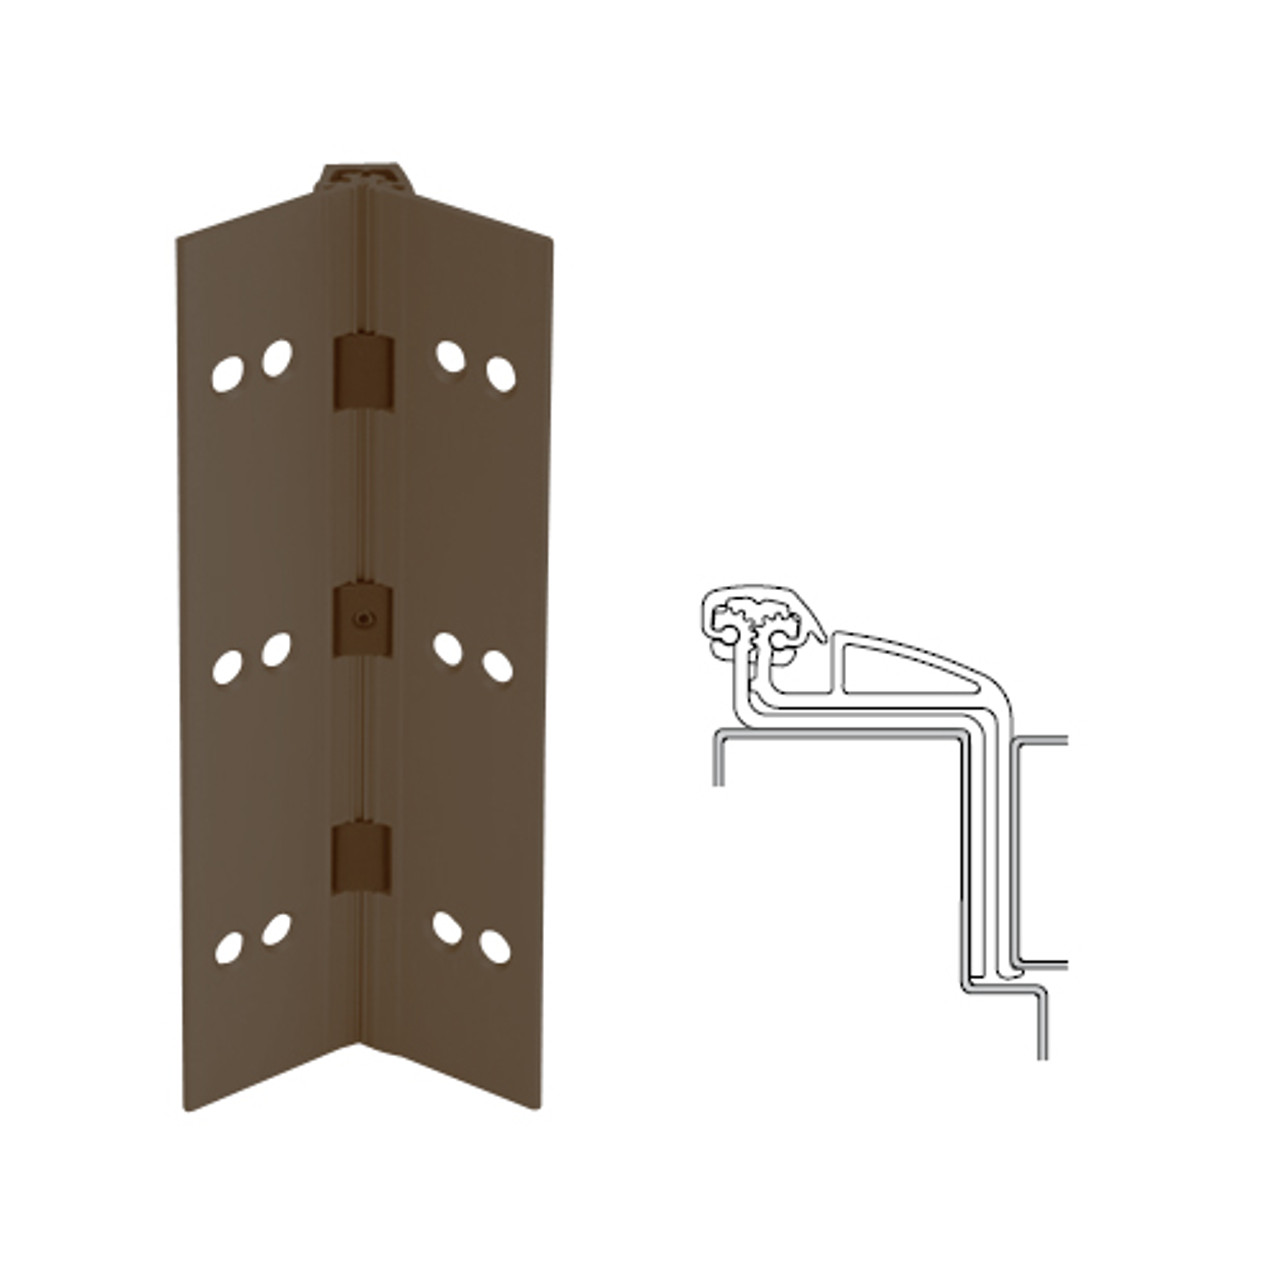 041XY-313AN-85-SECWDHM IVES Full Mortise Continuous Geared Hinges with Security Screws - Hex Pin Drive in Dark Bronze Anodized